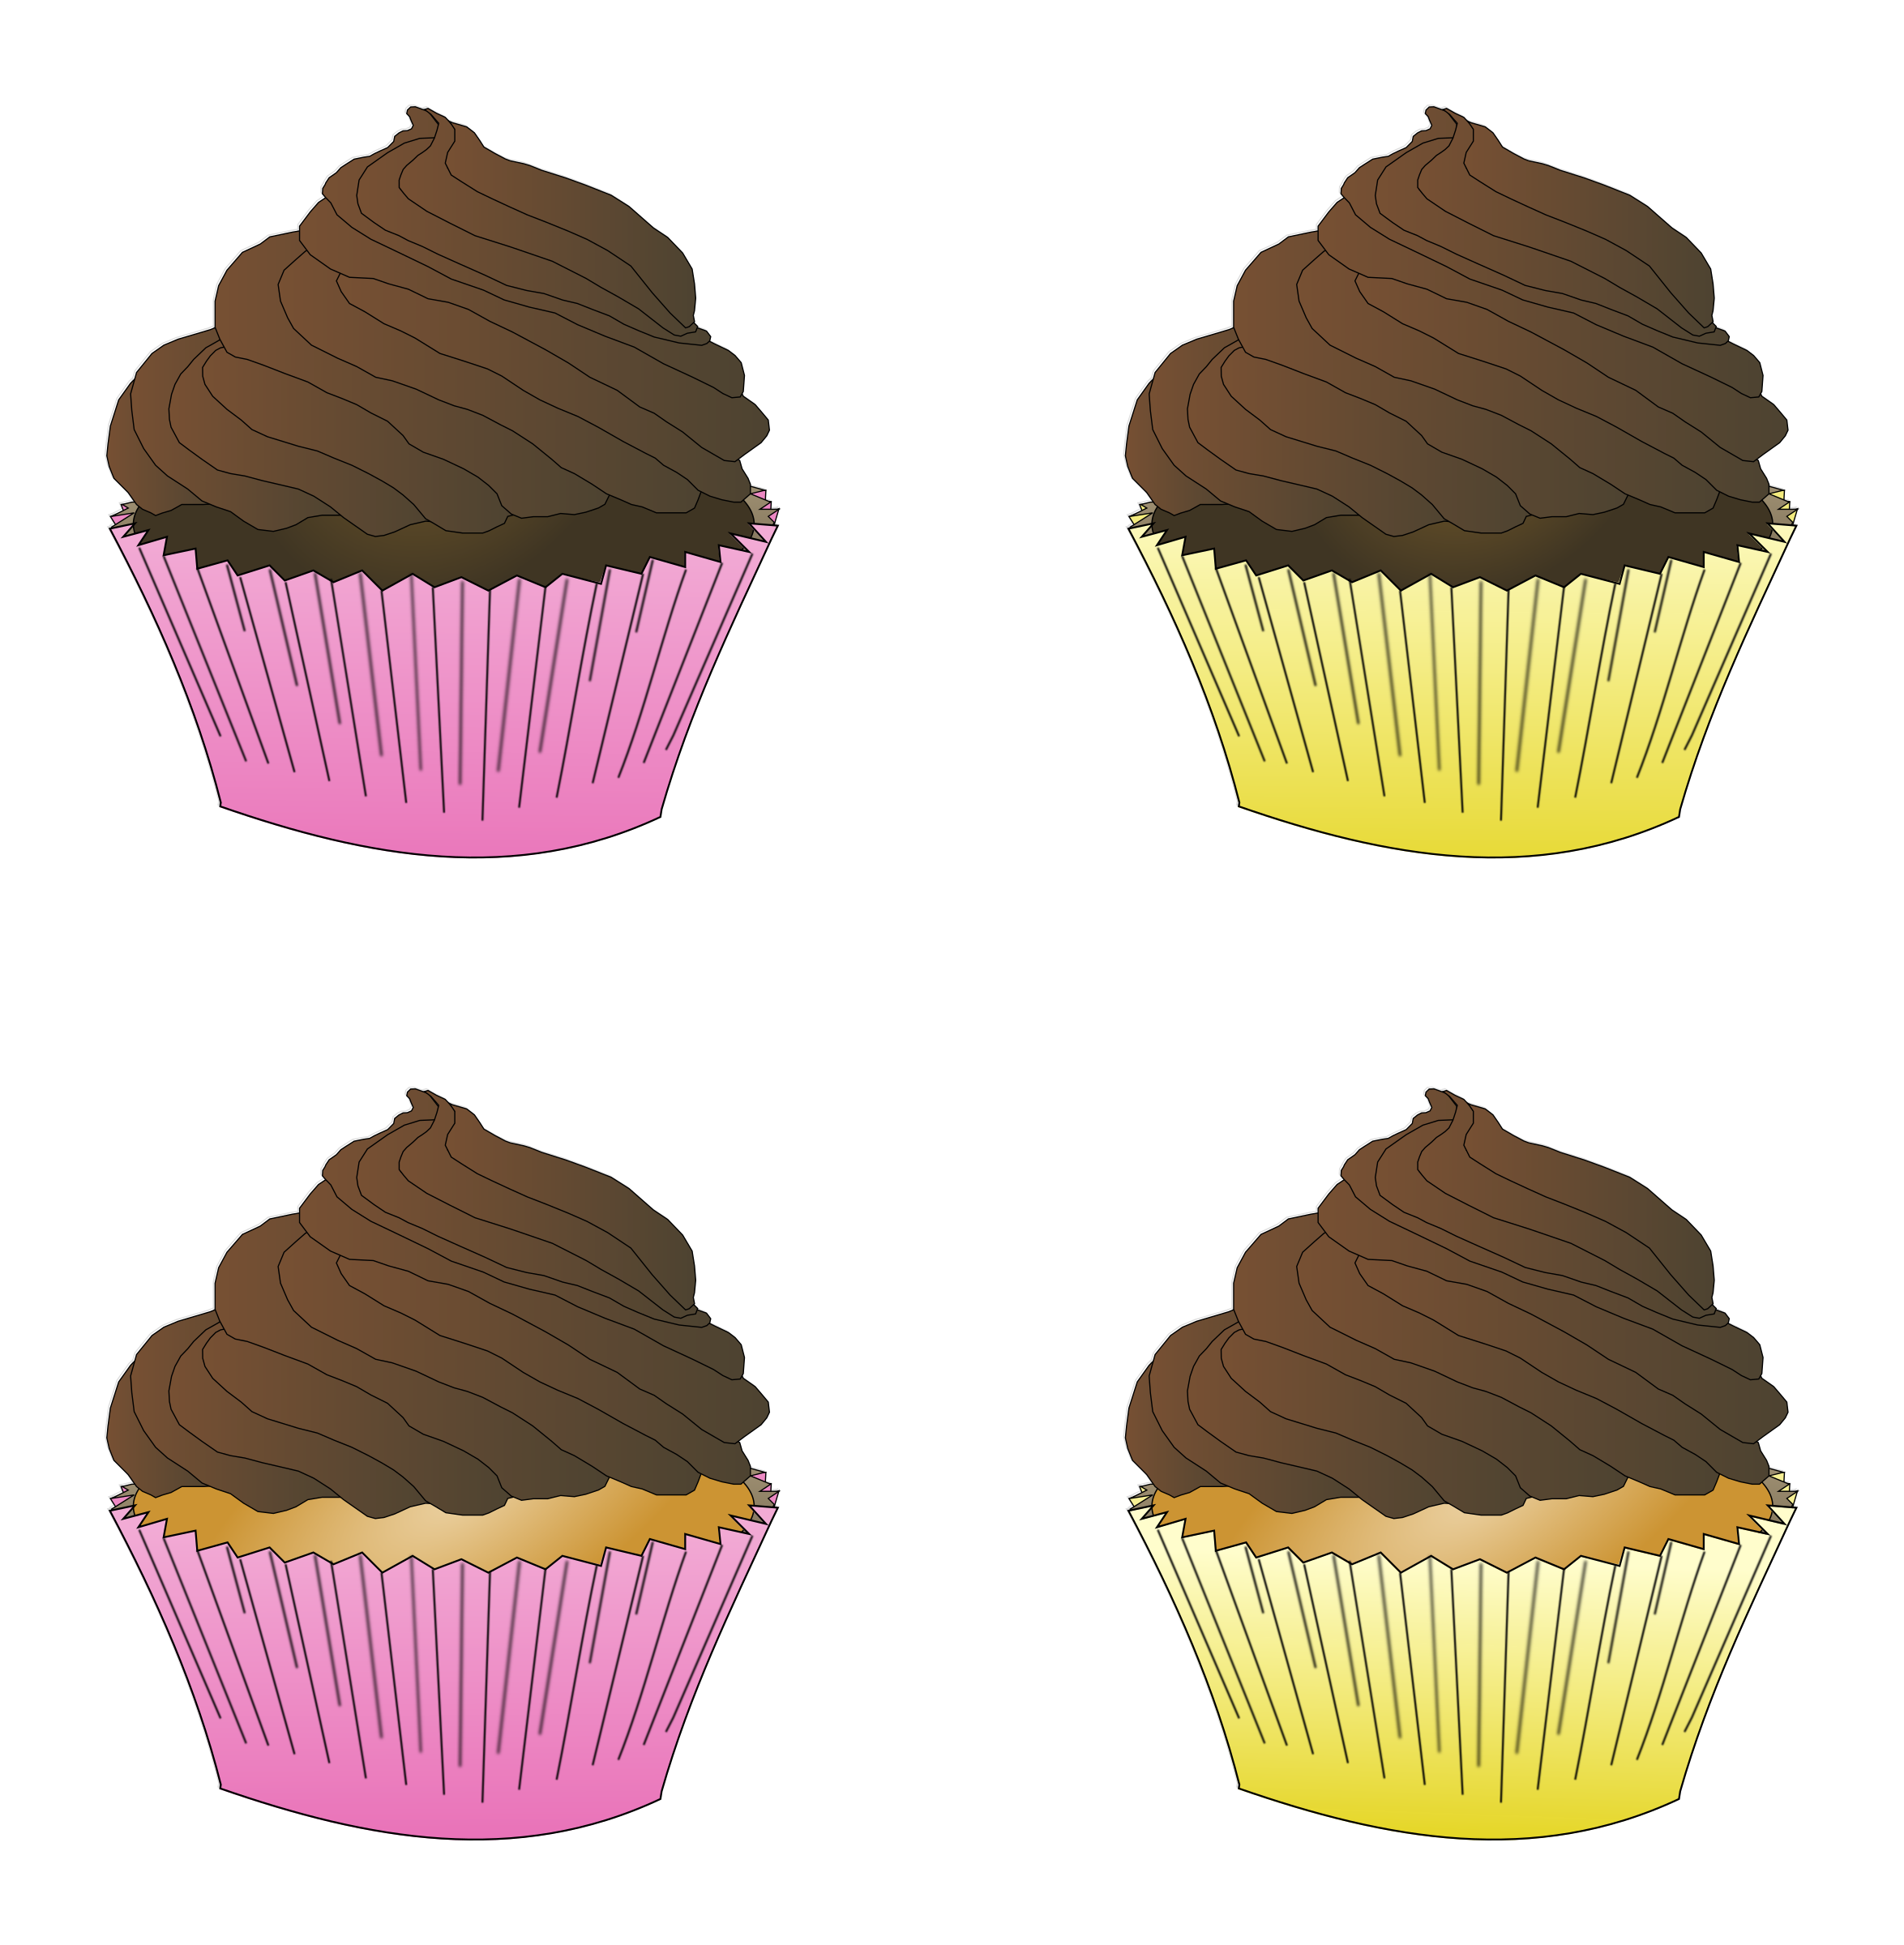 Assorted Chocolate Frosted Cupcakes by PinkJellyfish